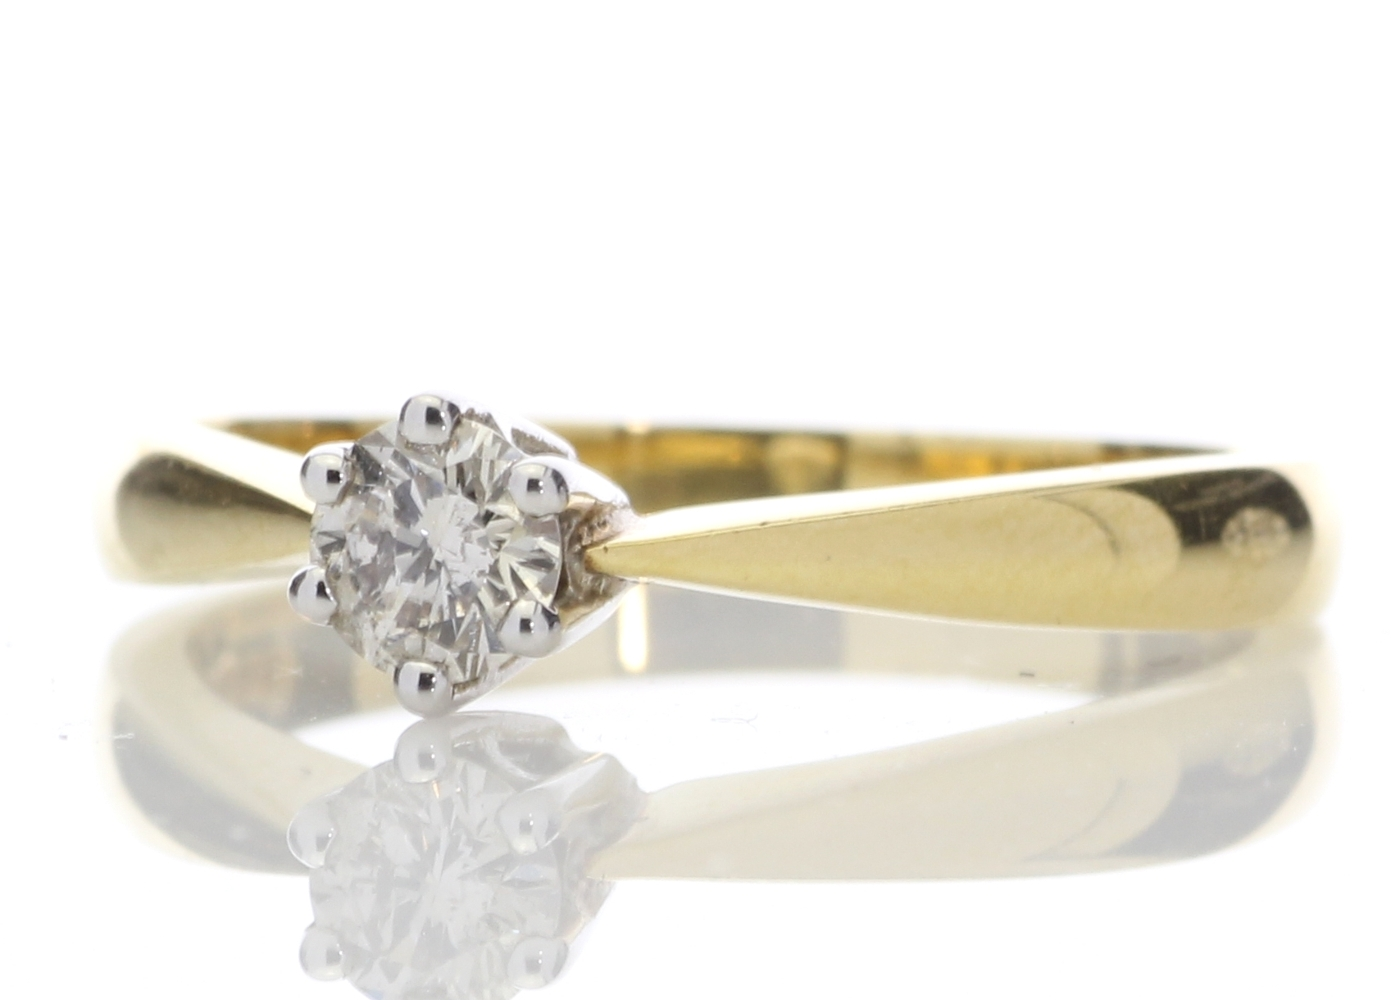 18ct Yellow Gold Six Claw Set Diamond Ring H SI 0.25 Carats - Image 2 of 4